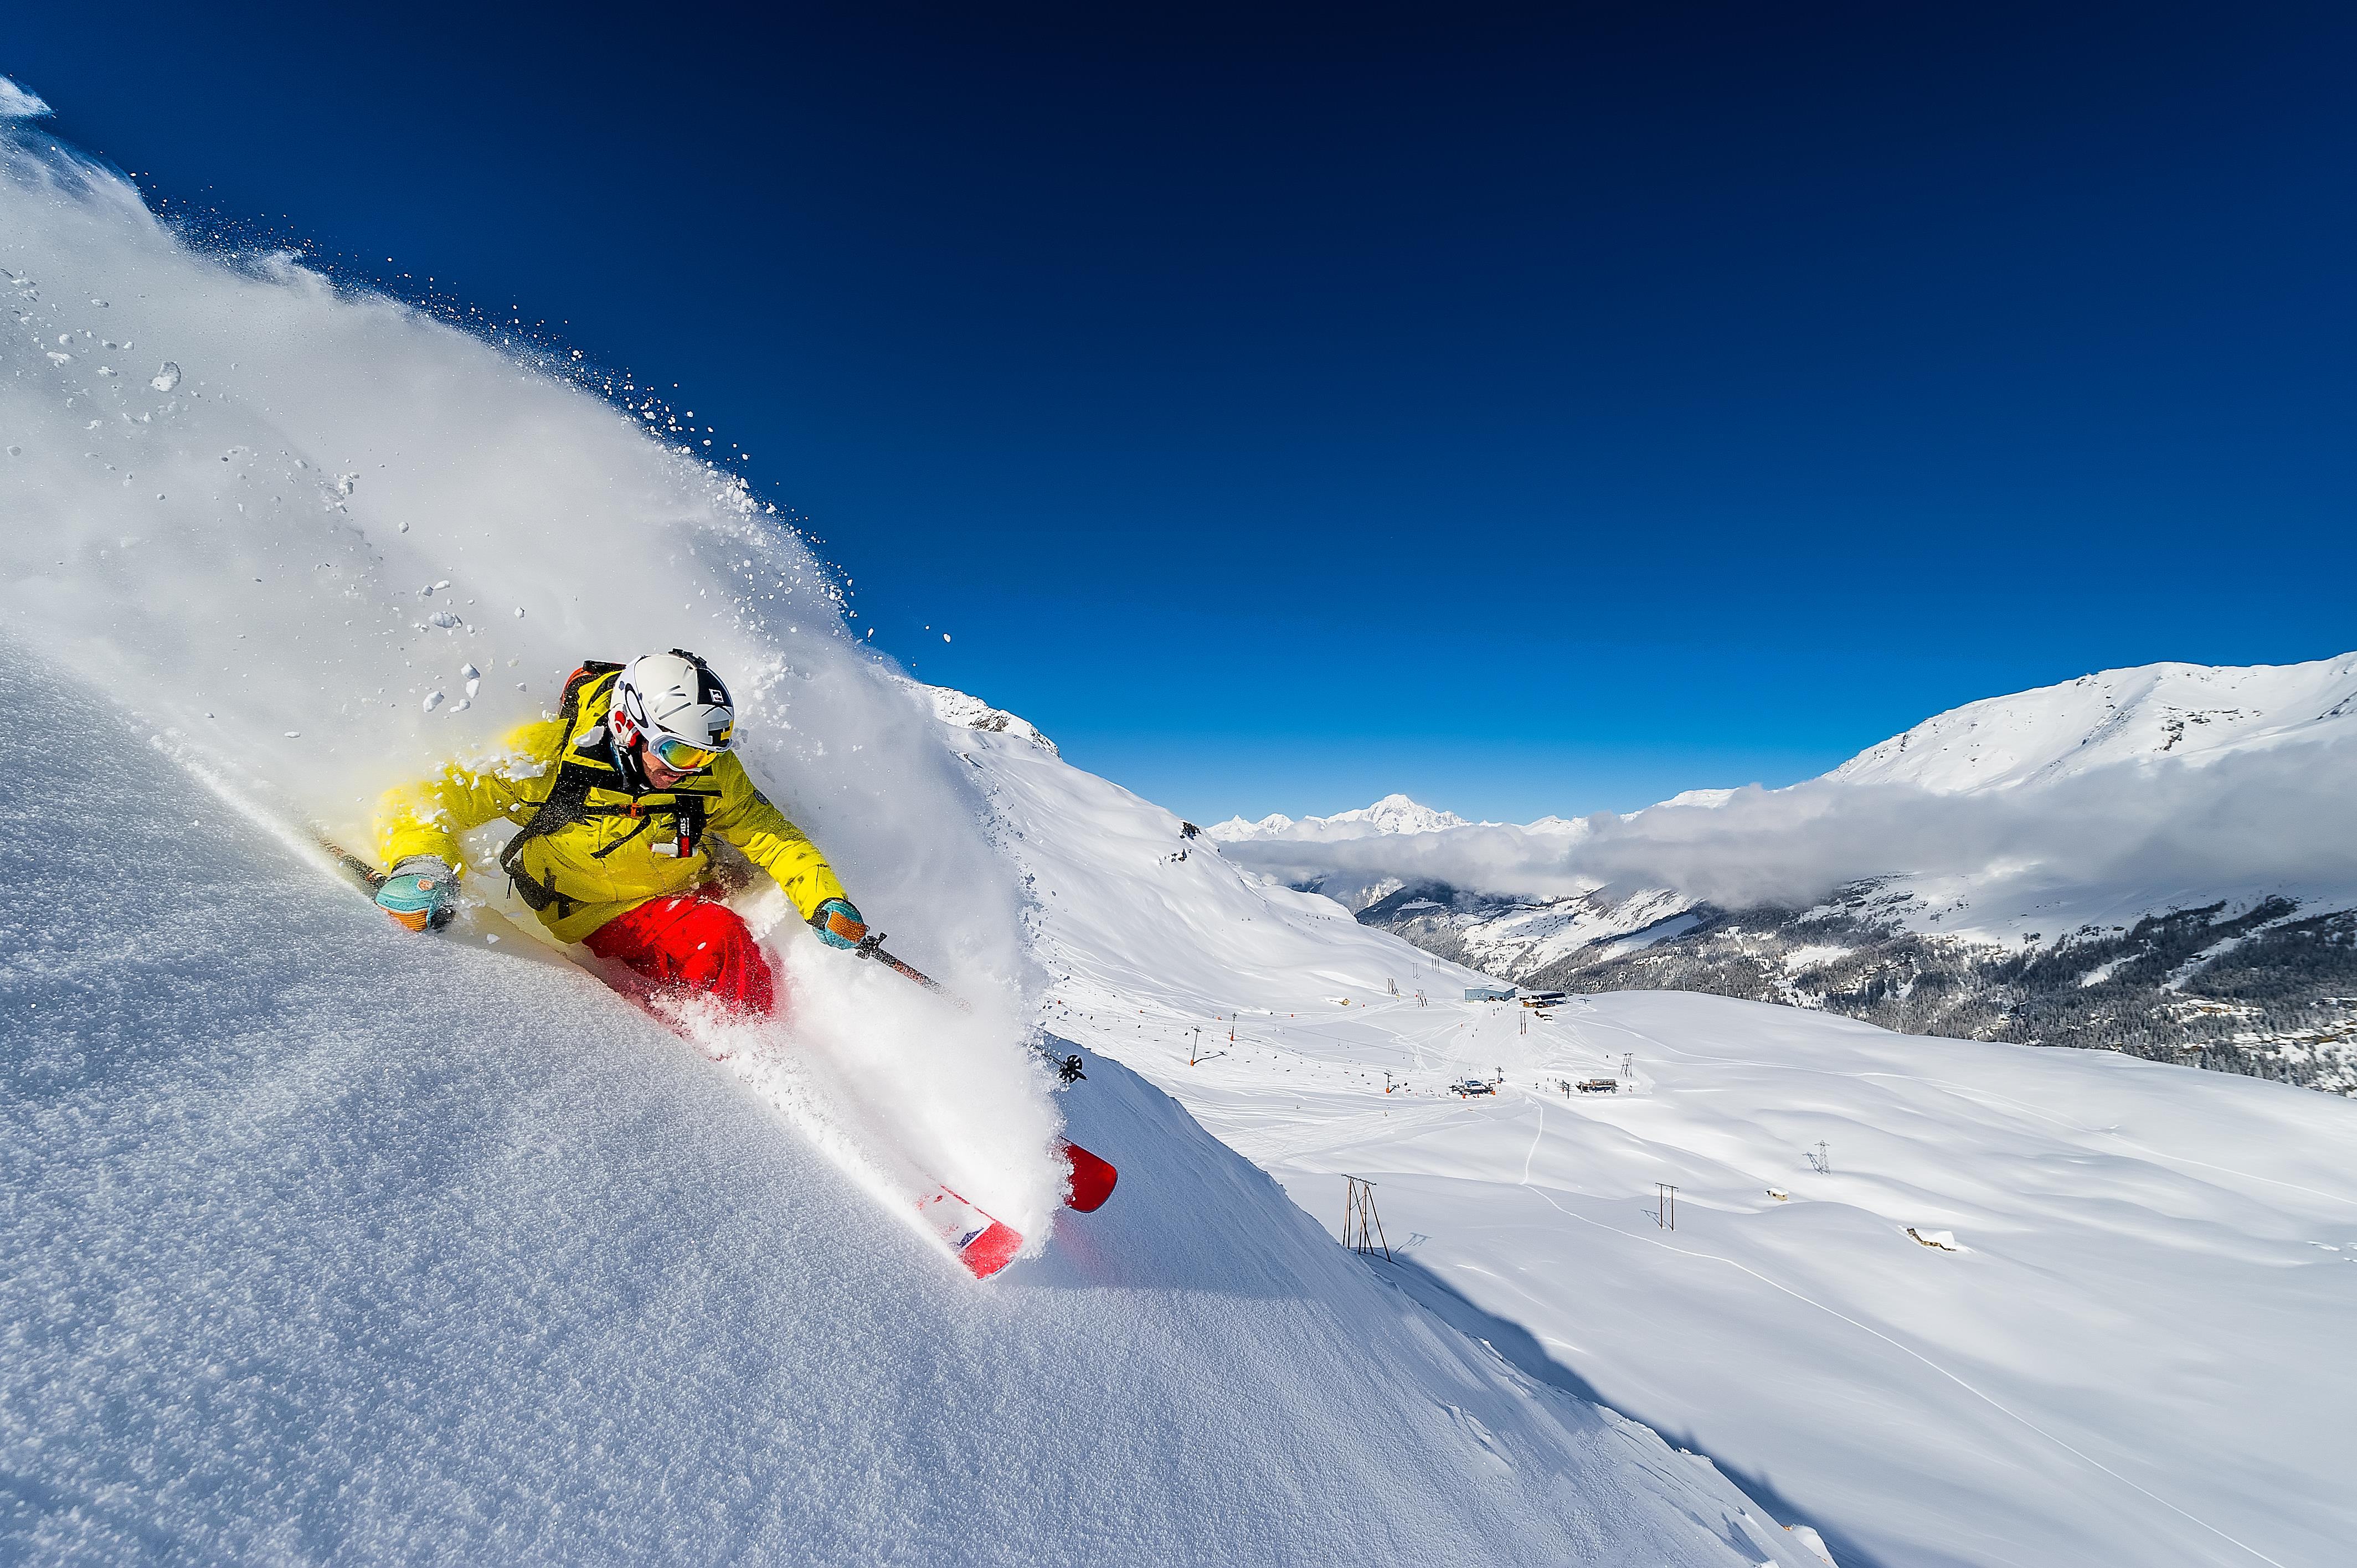 Tignes Ski Slopes © (Andy Parant)